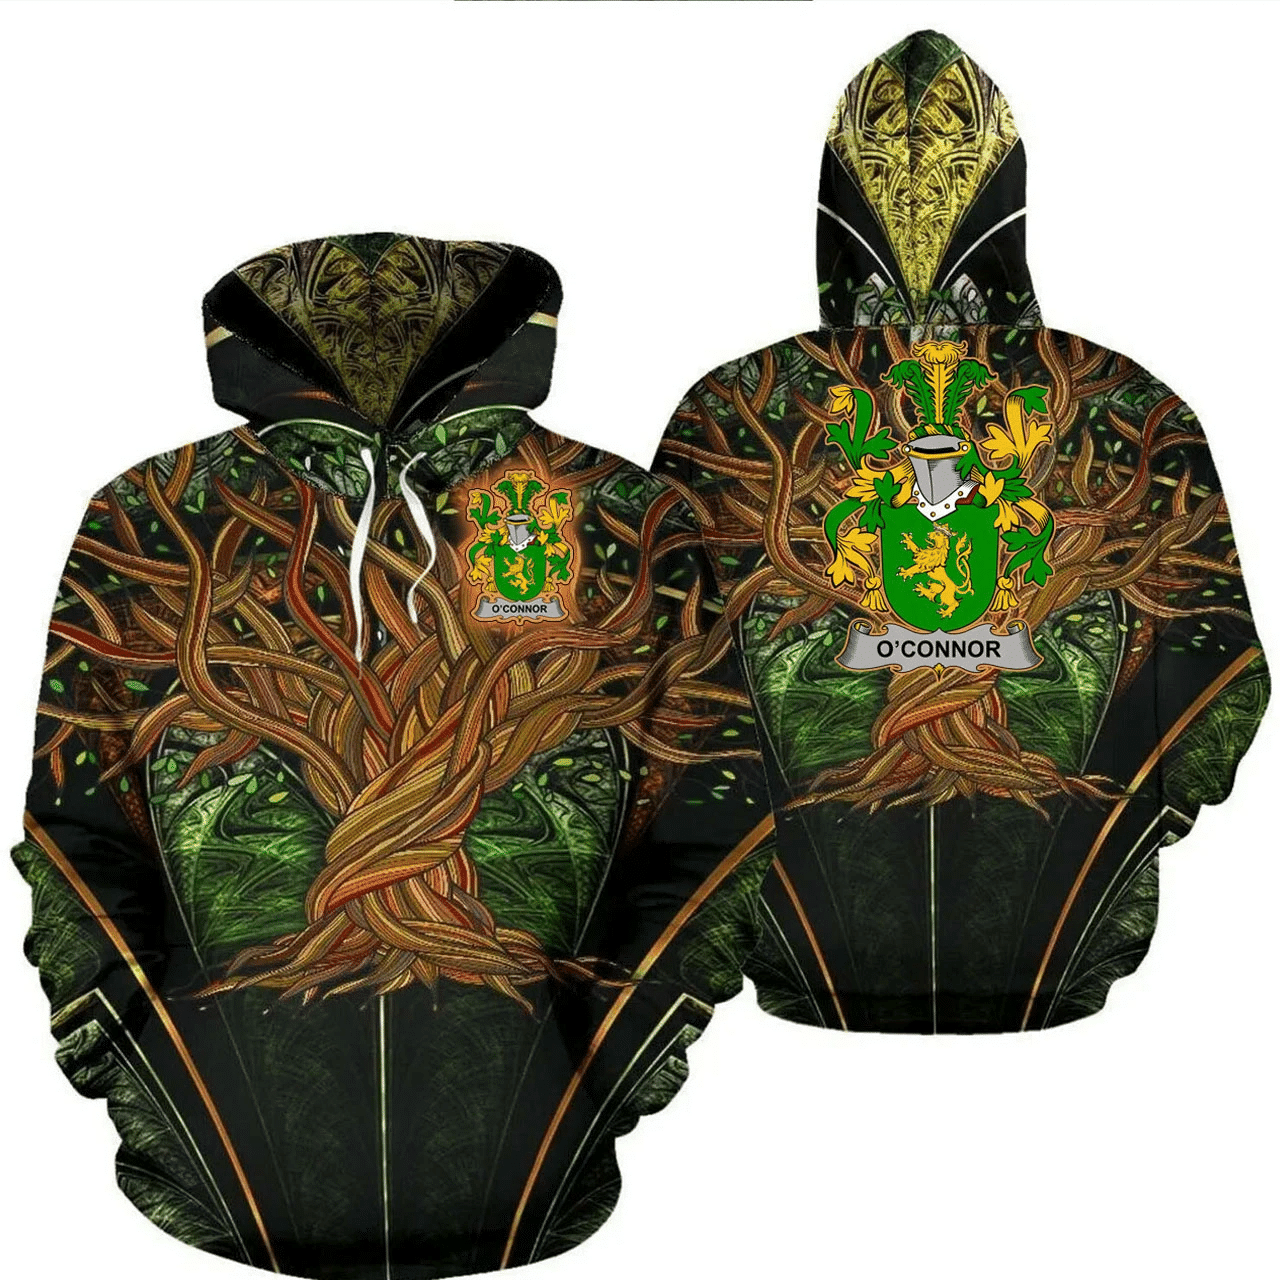 1stIreland Ireland Hoodie - Connor or O'Connor (Kerry) Irish Family Crest Hoodie - Tree Of Life A7